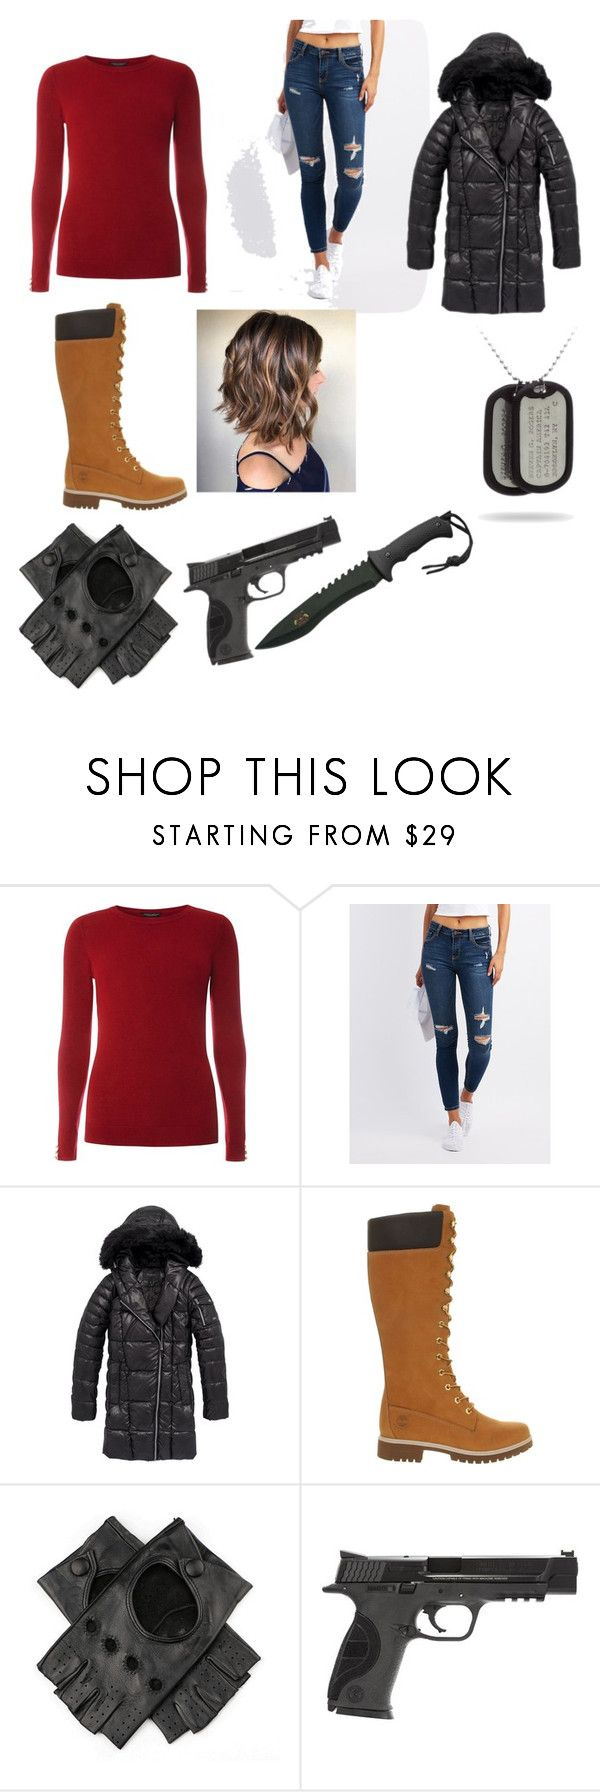 """""""Adventure Part 2"""" by dylanjacobclements ❤ liked on Polyvore featuring Dorothy Perkins, Cello, Andrew Marc, Timberland, Black and Smith & Wesson"""